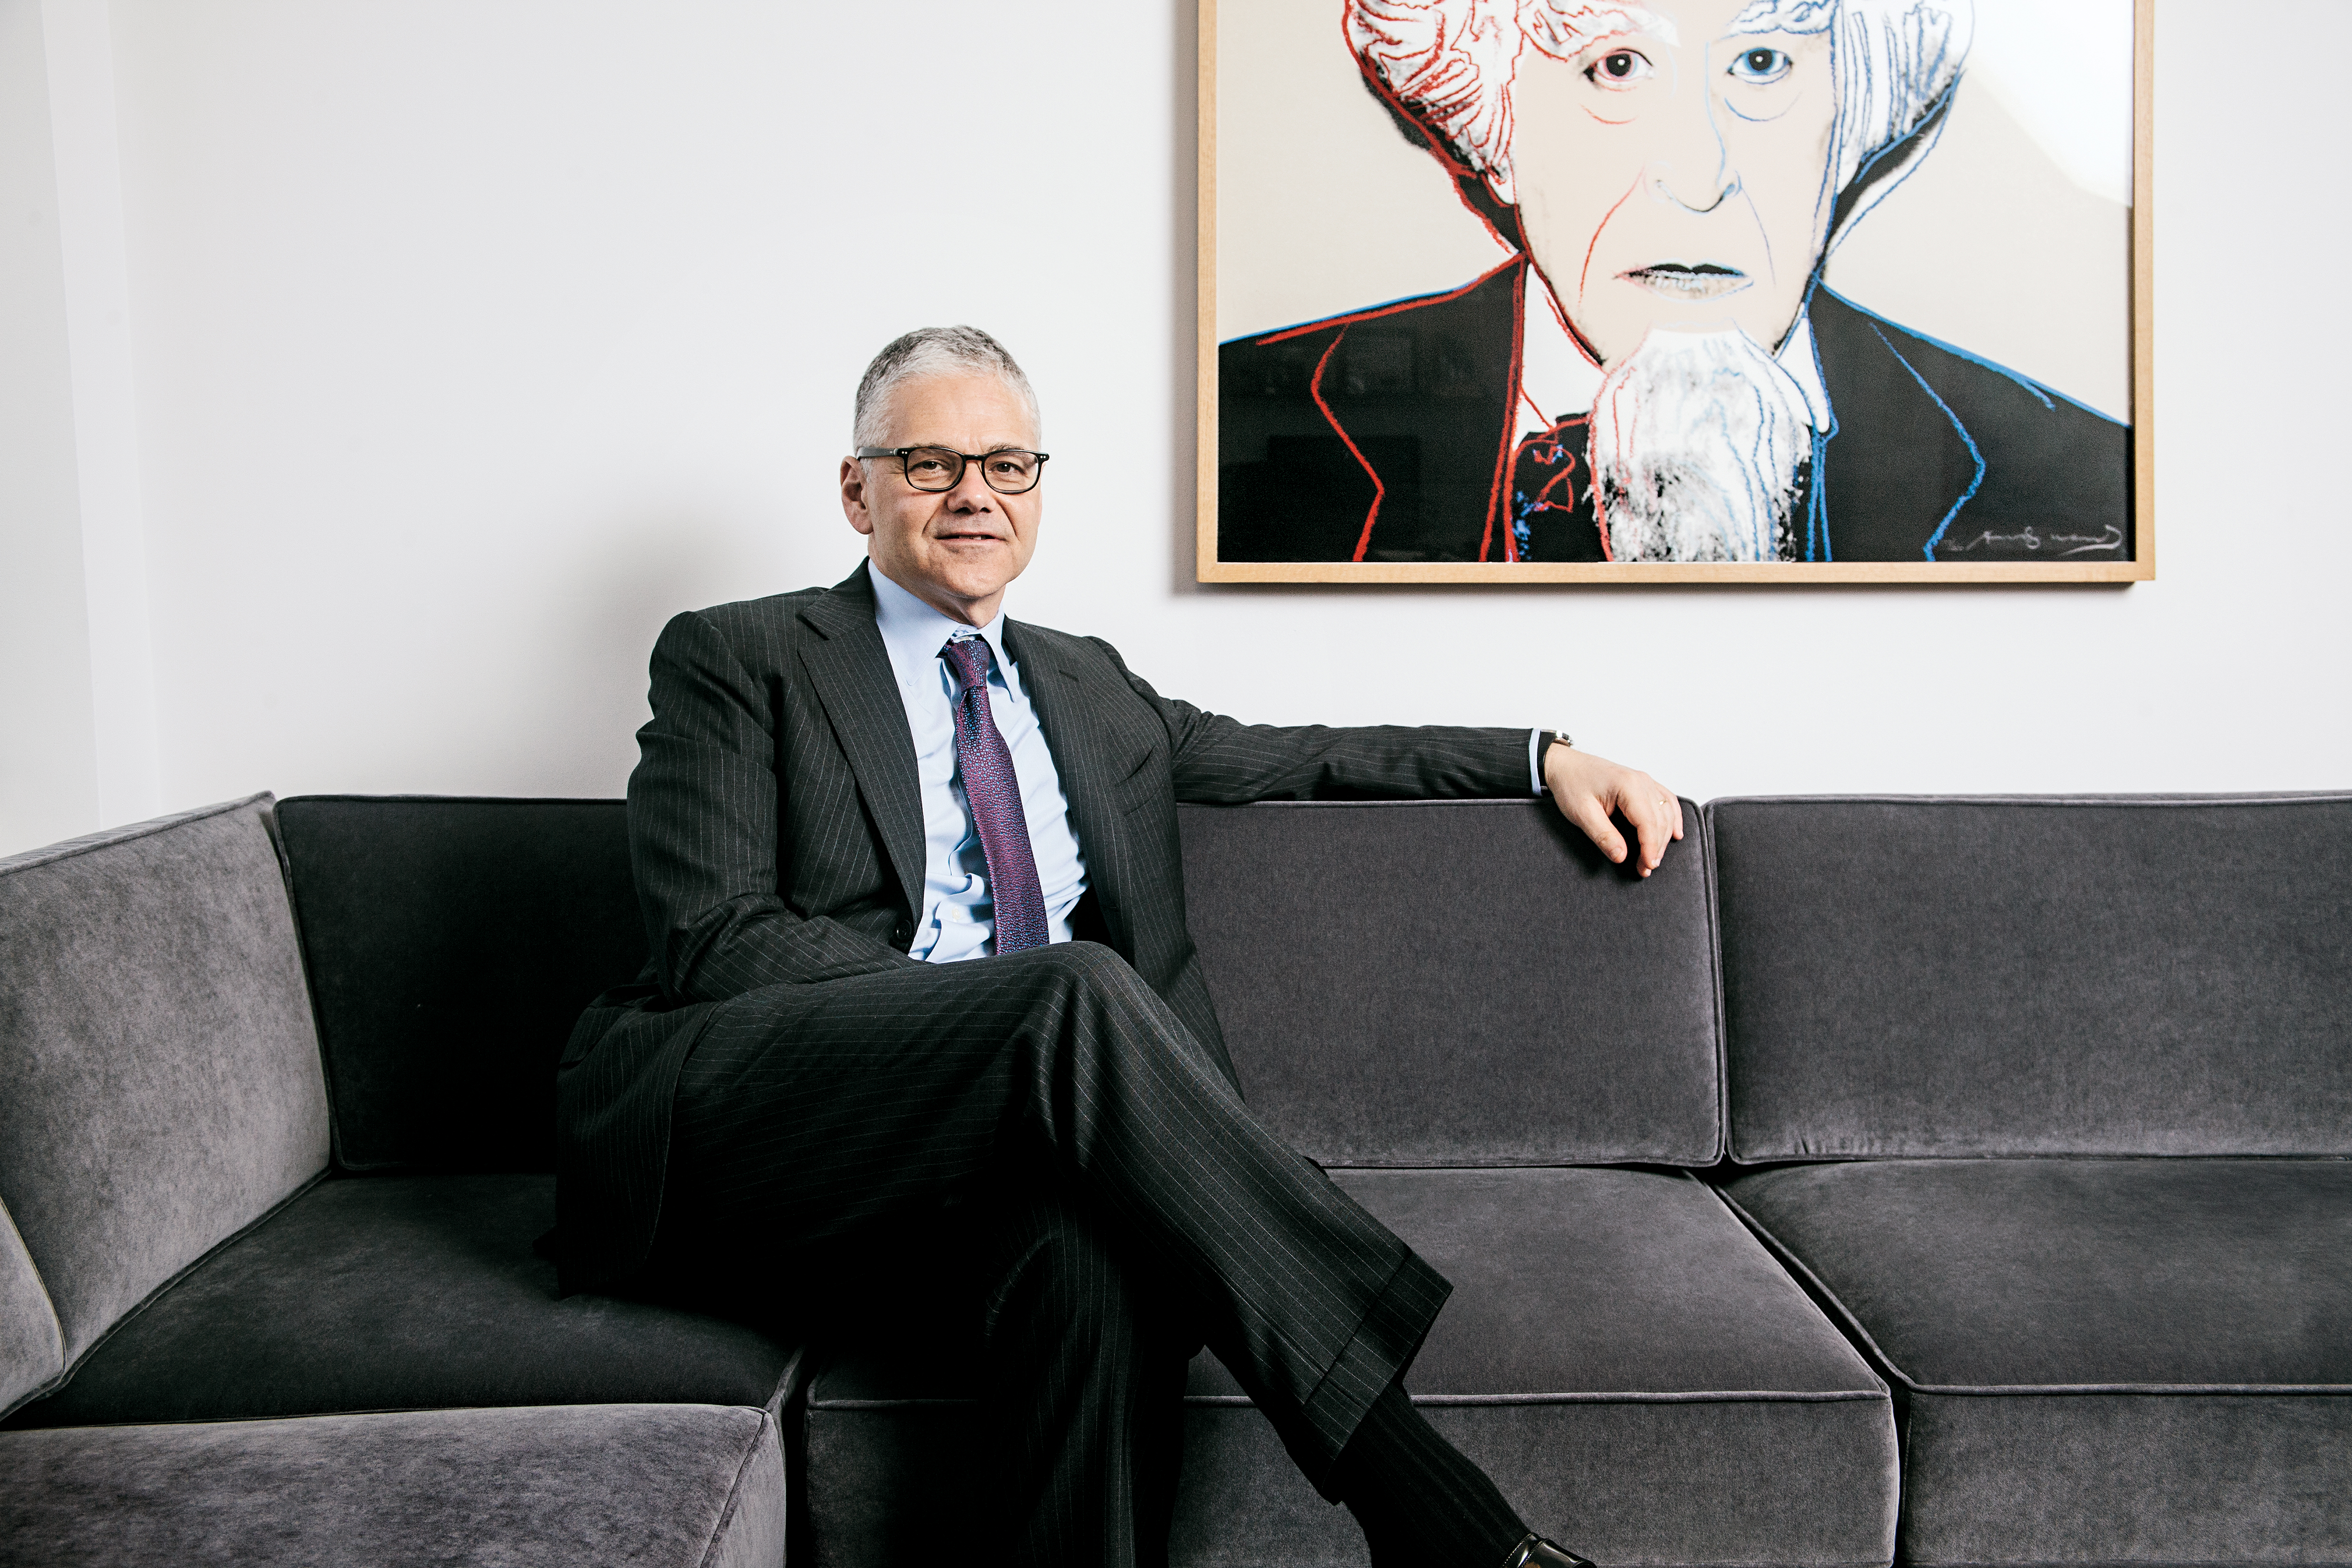 Movado will mark its 135th anniversary at Baselworld, and ceo Efraim Grinberg discussed the storied brand's history and what's ahead.